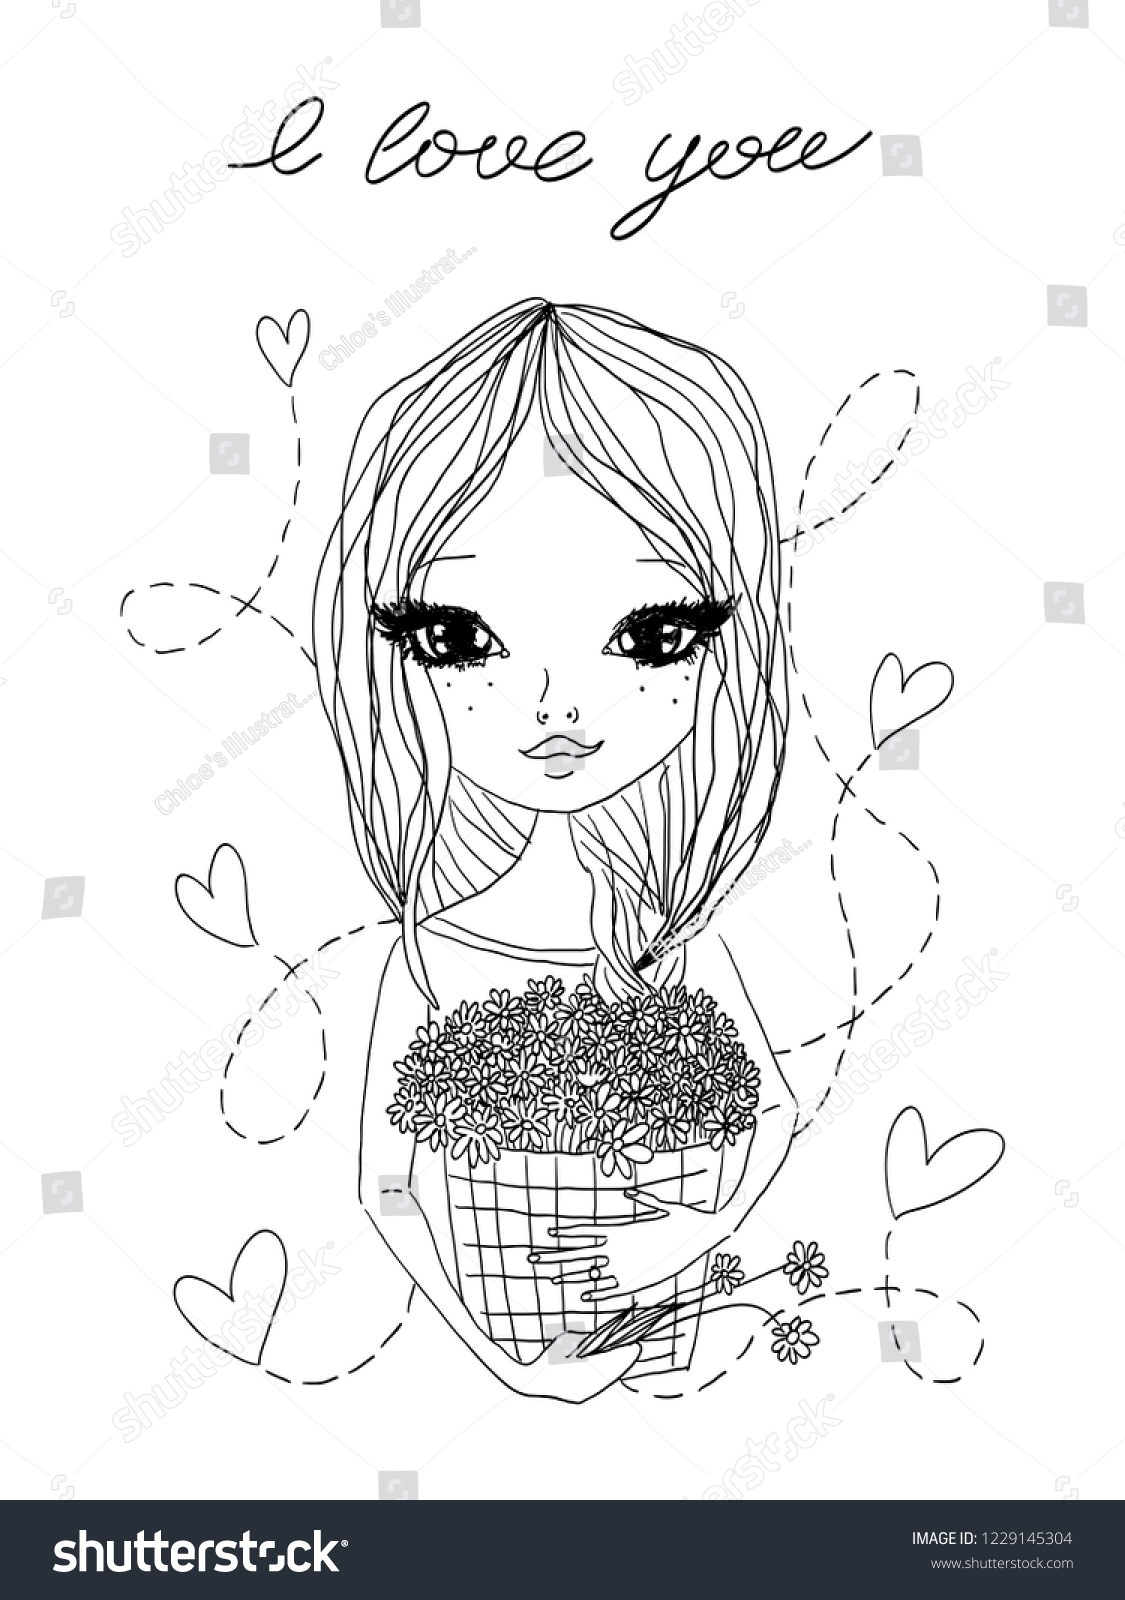 stock-vector-black-and-white-vector-cute